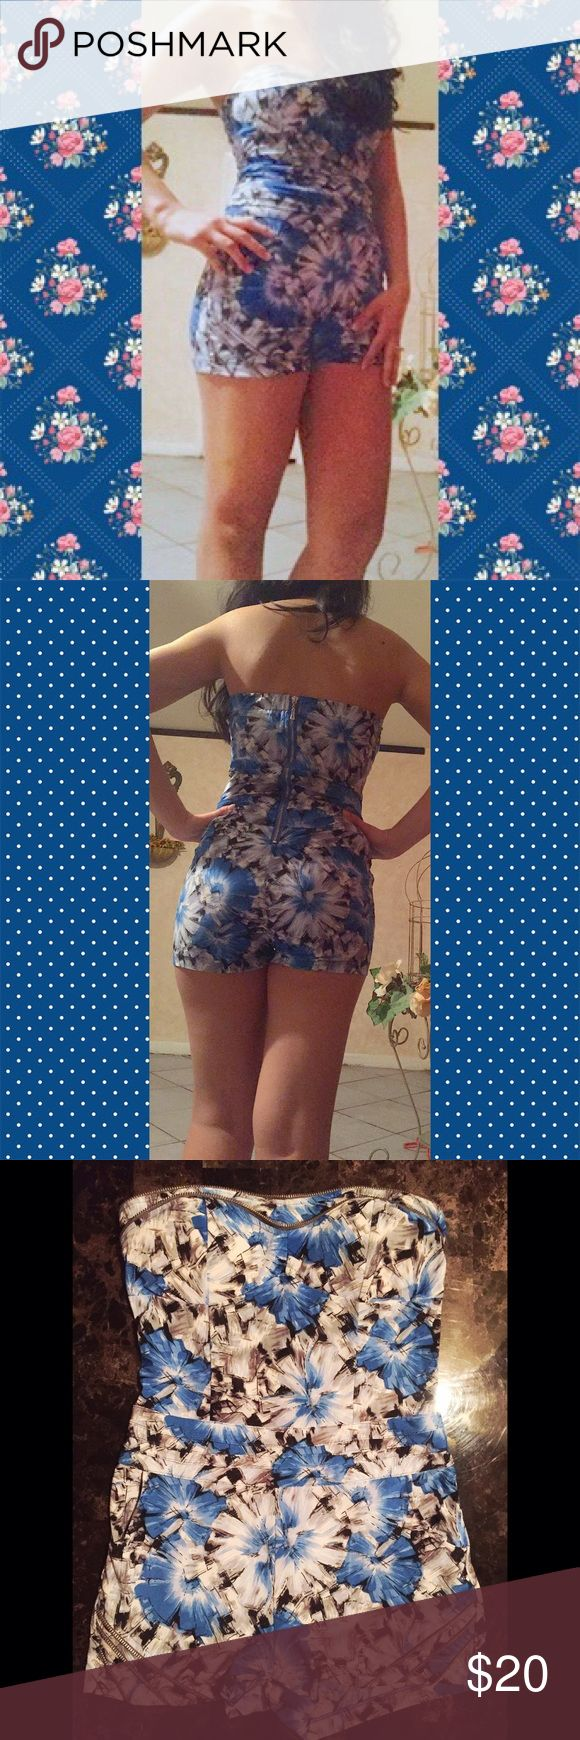 Floral Romper Sexy & Perfect for Spring Tight fitting, great for a curvy body. Super comfortable. Floral print in blues, grays, and black. Zipper in the back. Very stretchy! Like-New 💙 Bought at a boutique near me, you won't see a romper like this one. Size Large but more like a S-M curvy. Other